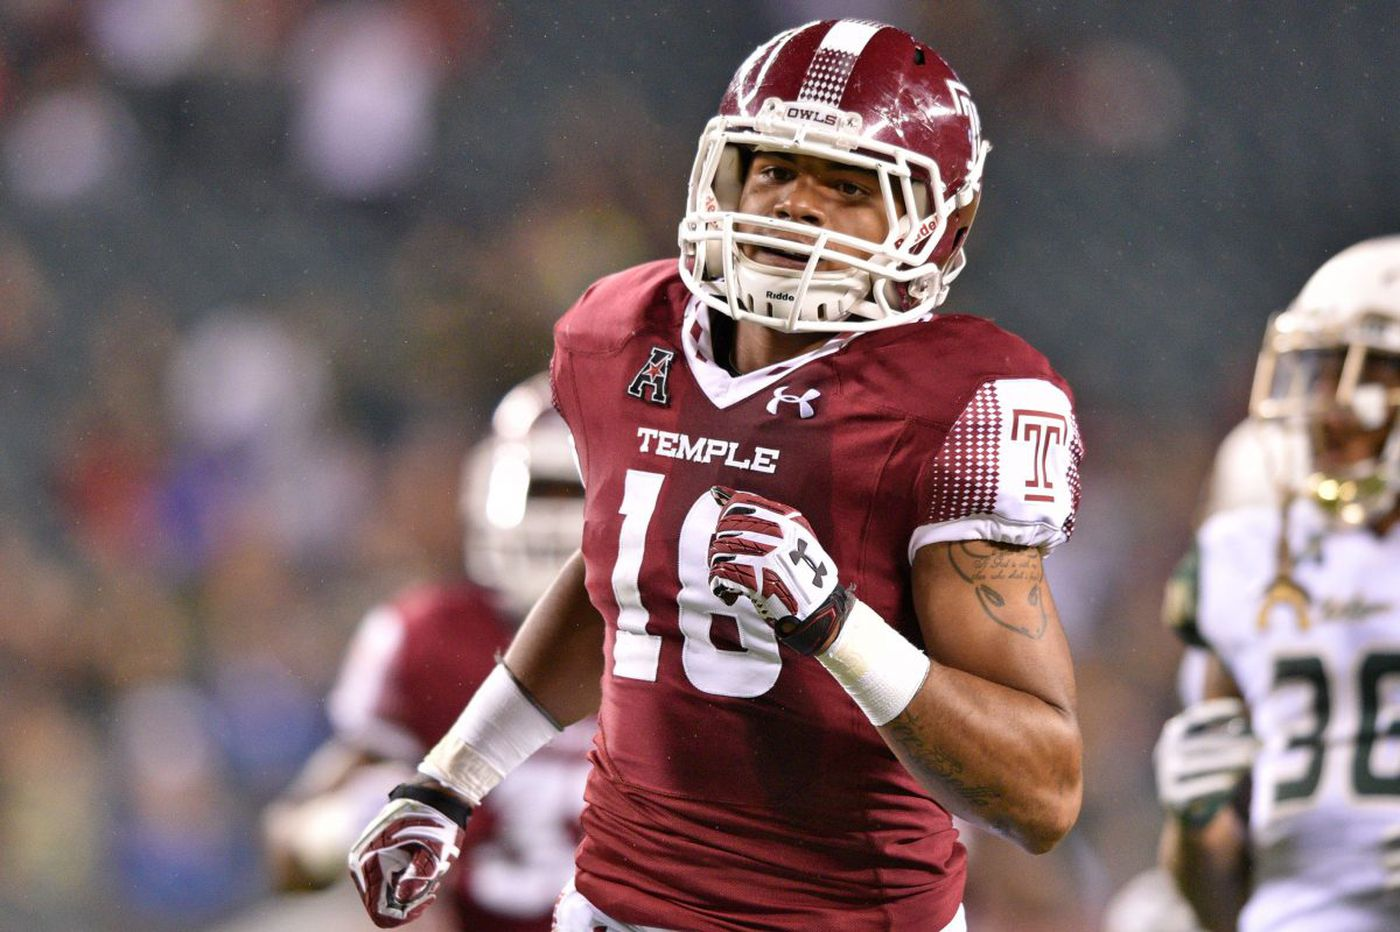 Temple's Shaun Bradley provides bulletin board material for Notre Dame